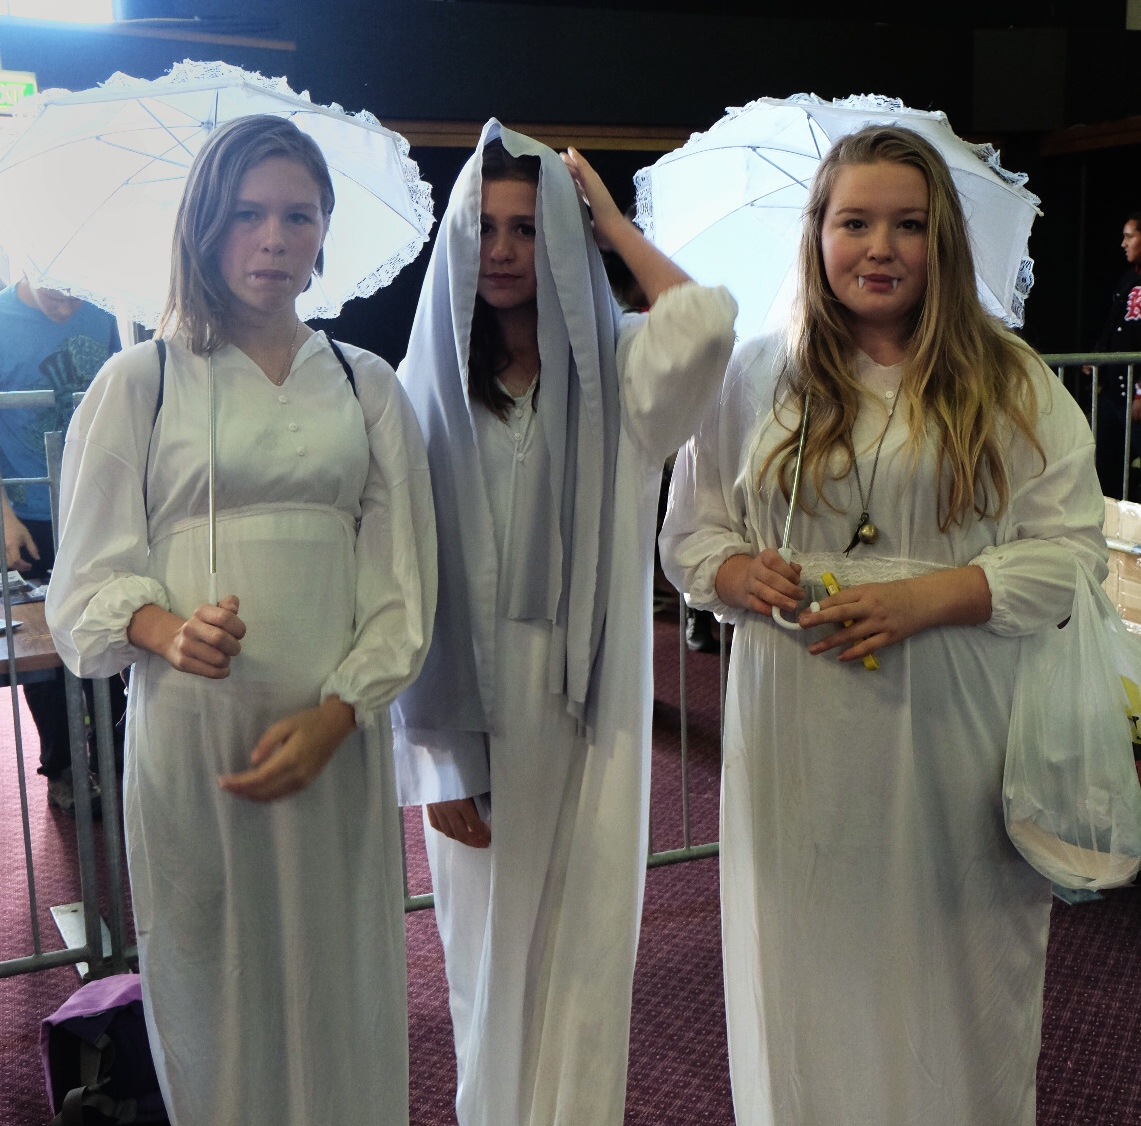 Caitlin Wisheart, Amy Wisheart and their friend Hannah Panbhuck dressed as vampires from one of the Doctor Who episodes